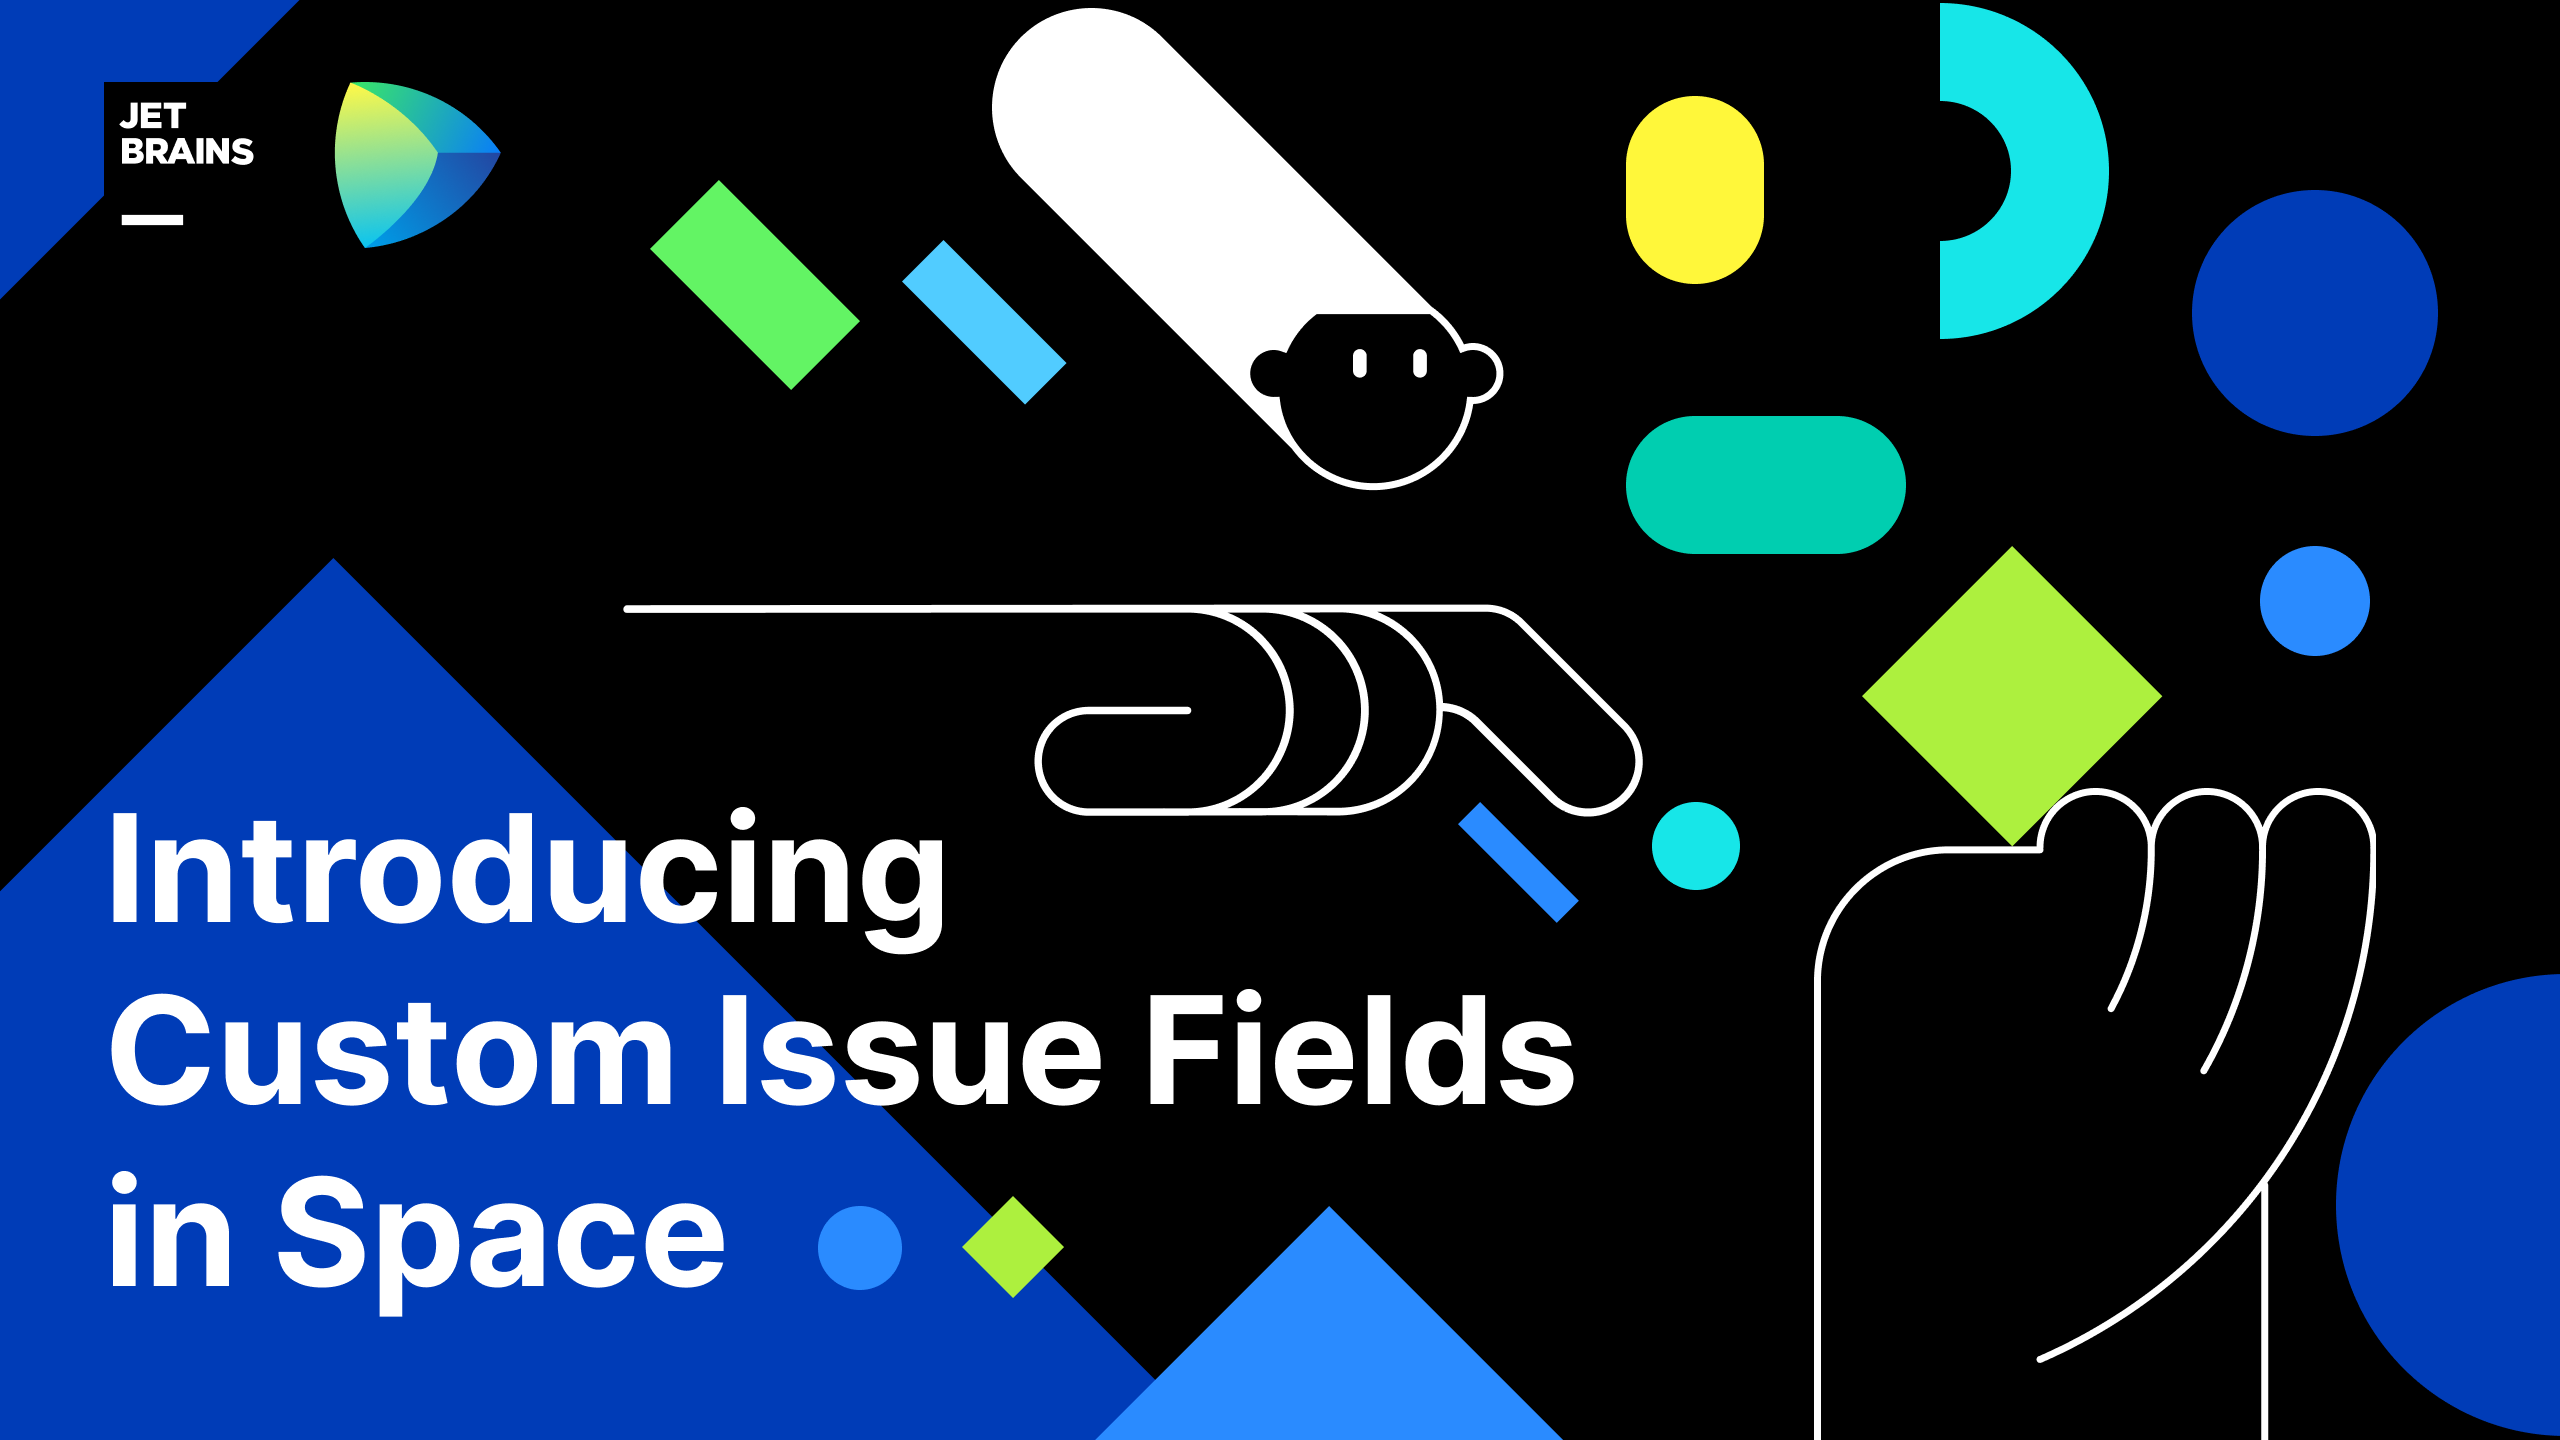 Introducing Custom Issue Fields in Space